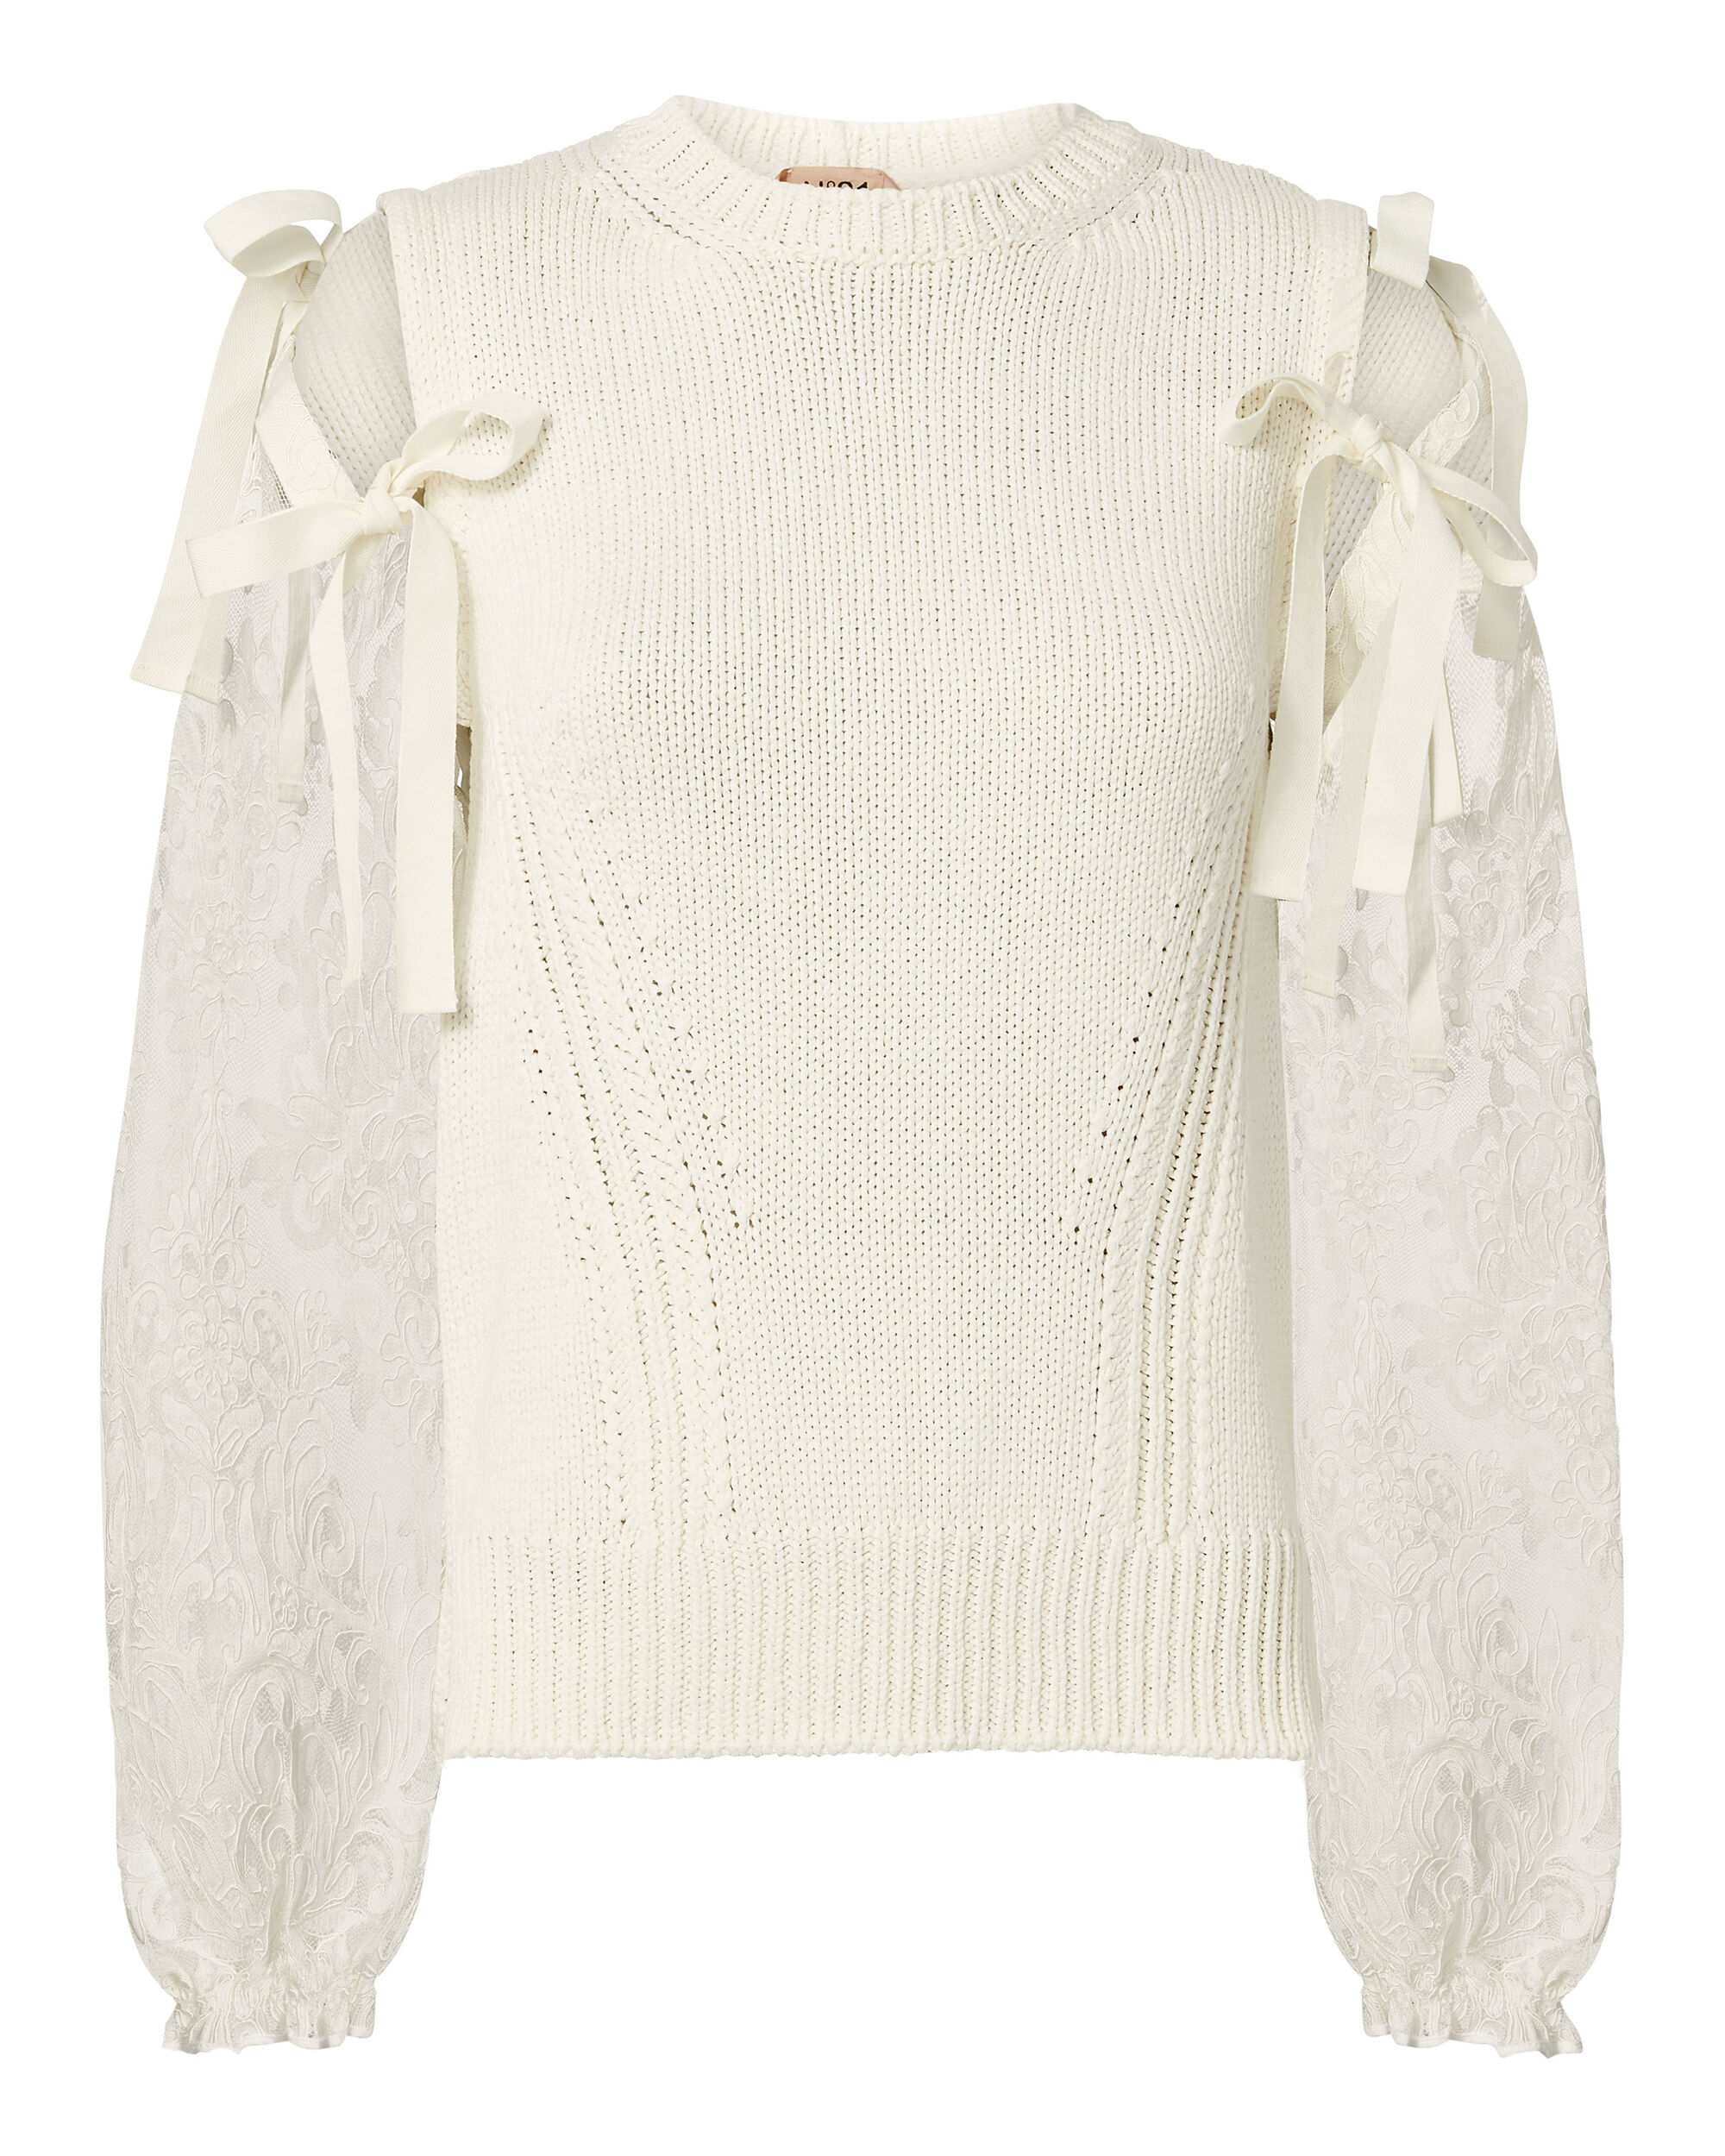 Lace Tie Sleeve Sweater, WHITE, hi-res